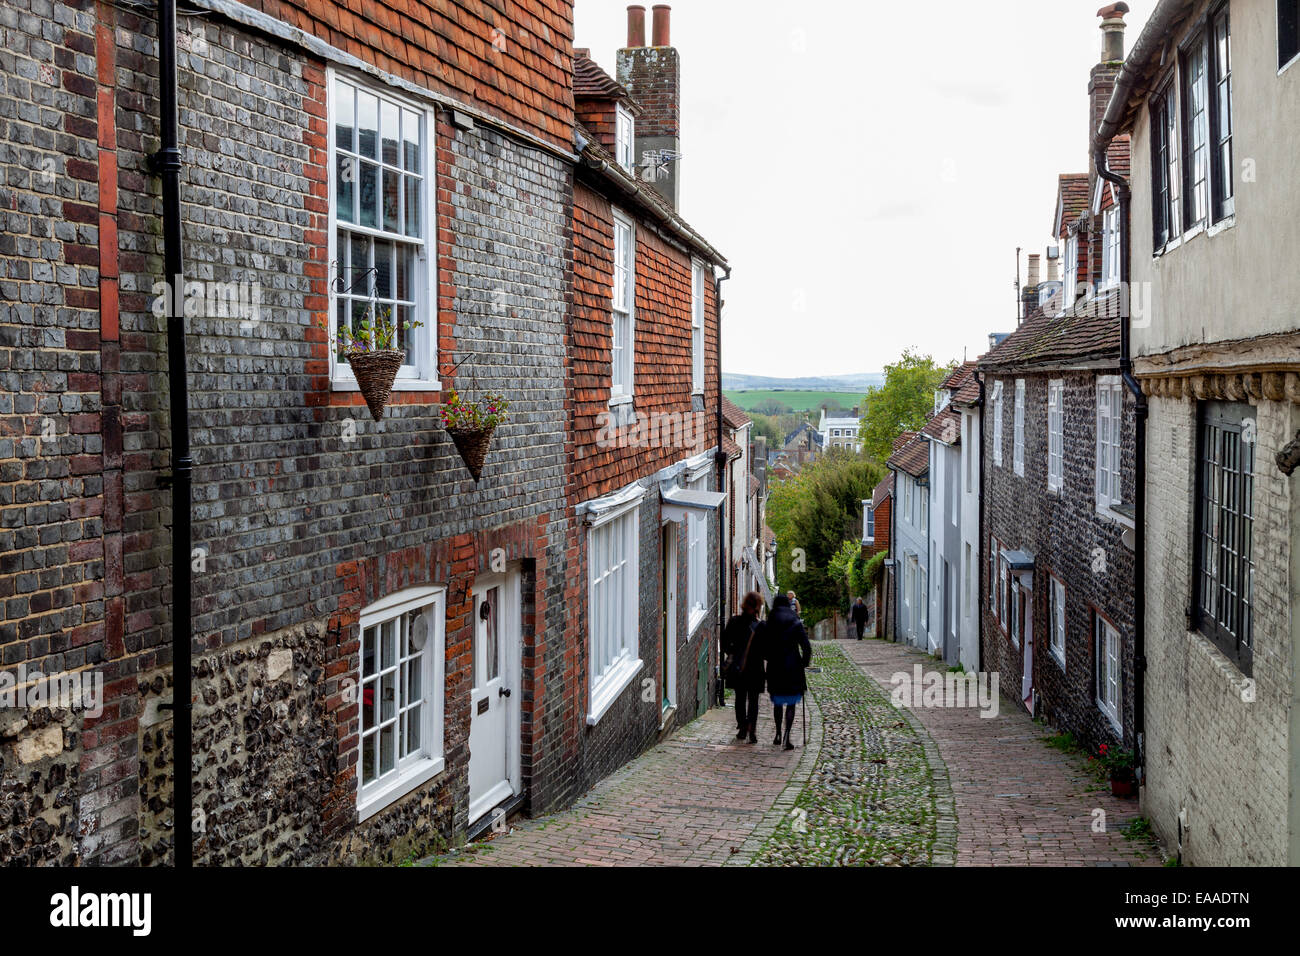 Keere Street, Lewes, Sussex, England Stock Photo